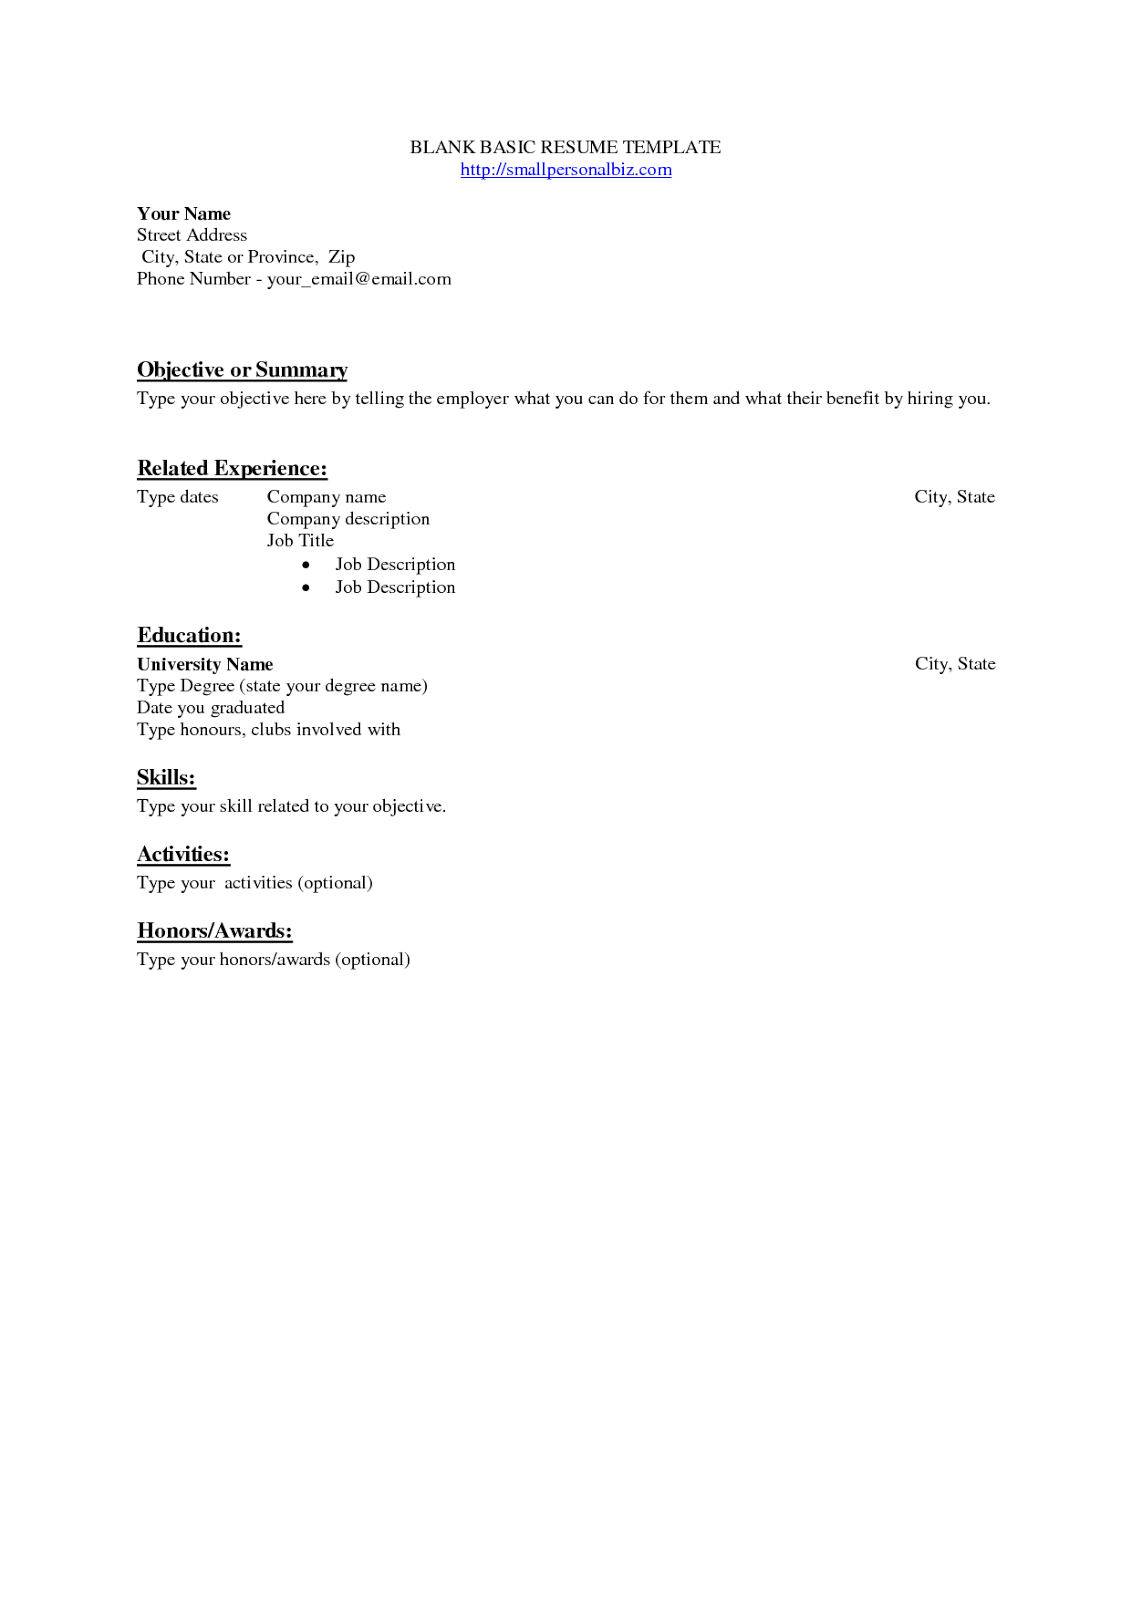 sample form of a resume sample resume resume com home design decor home interior and exterior sample resume resume com home design decor home interior and exterior